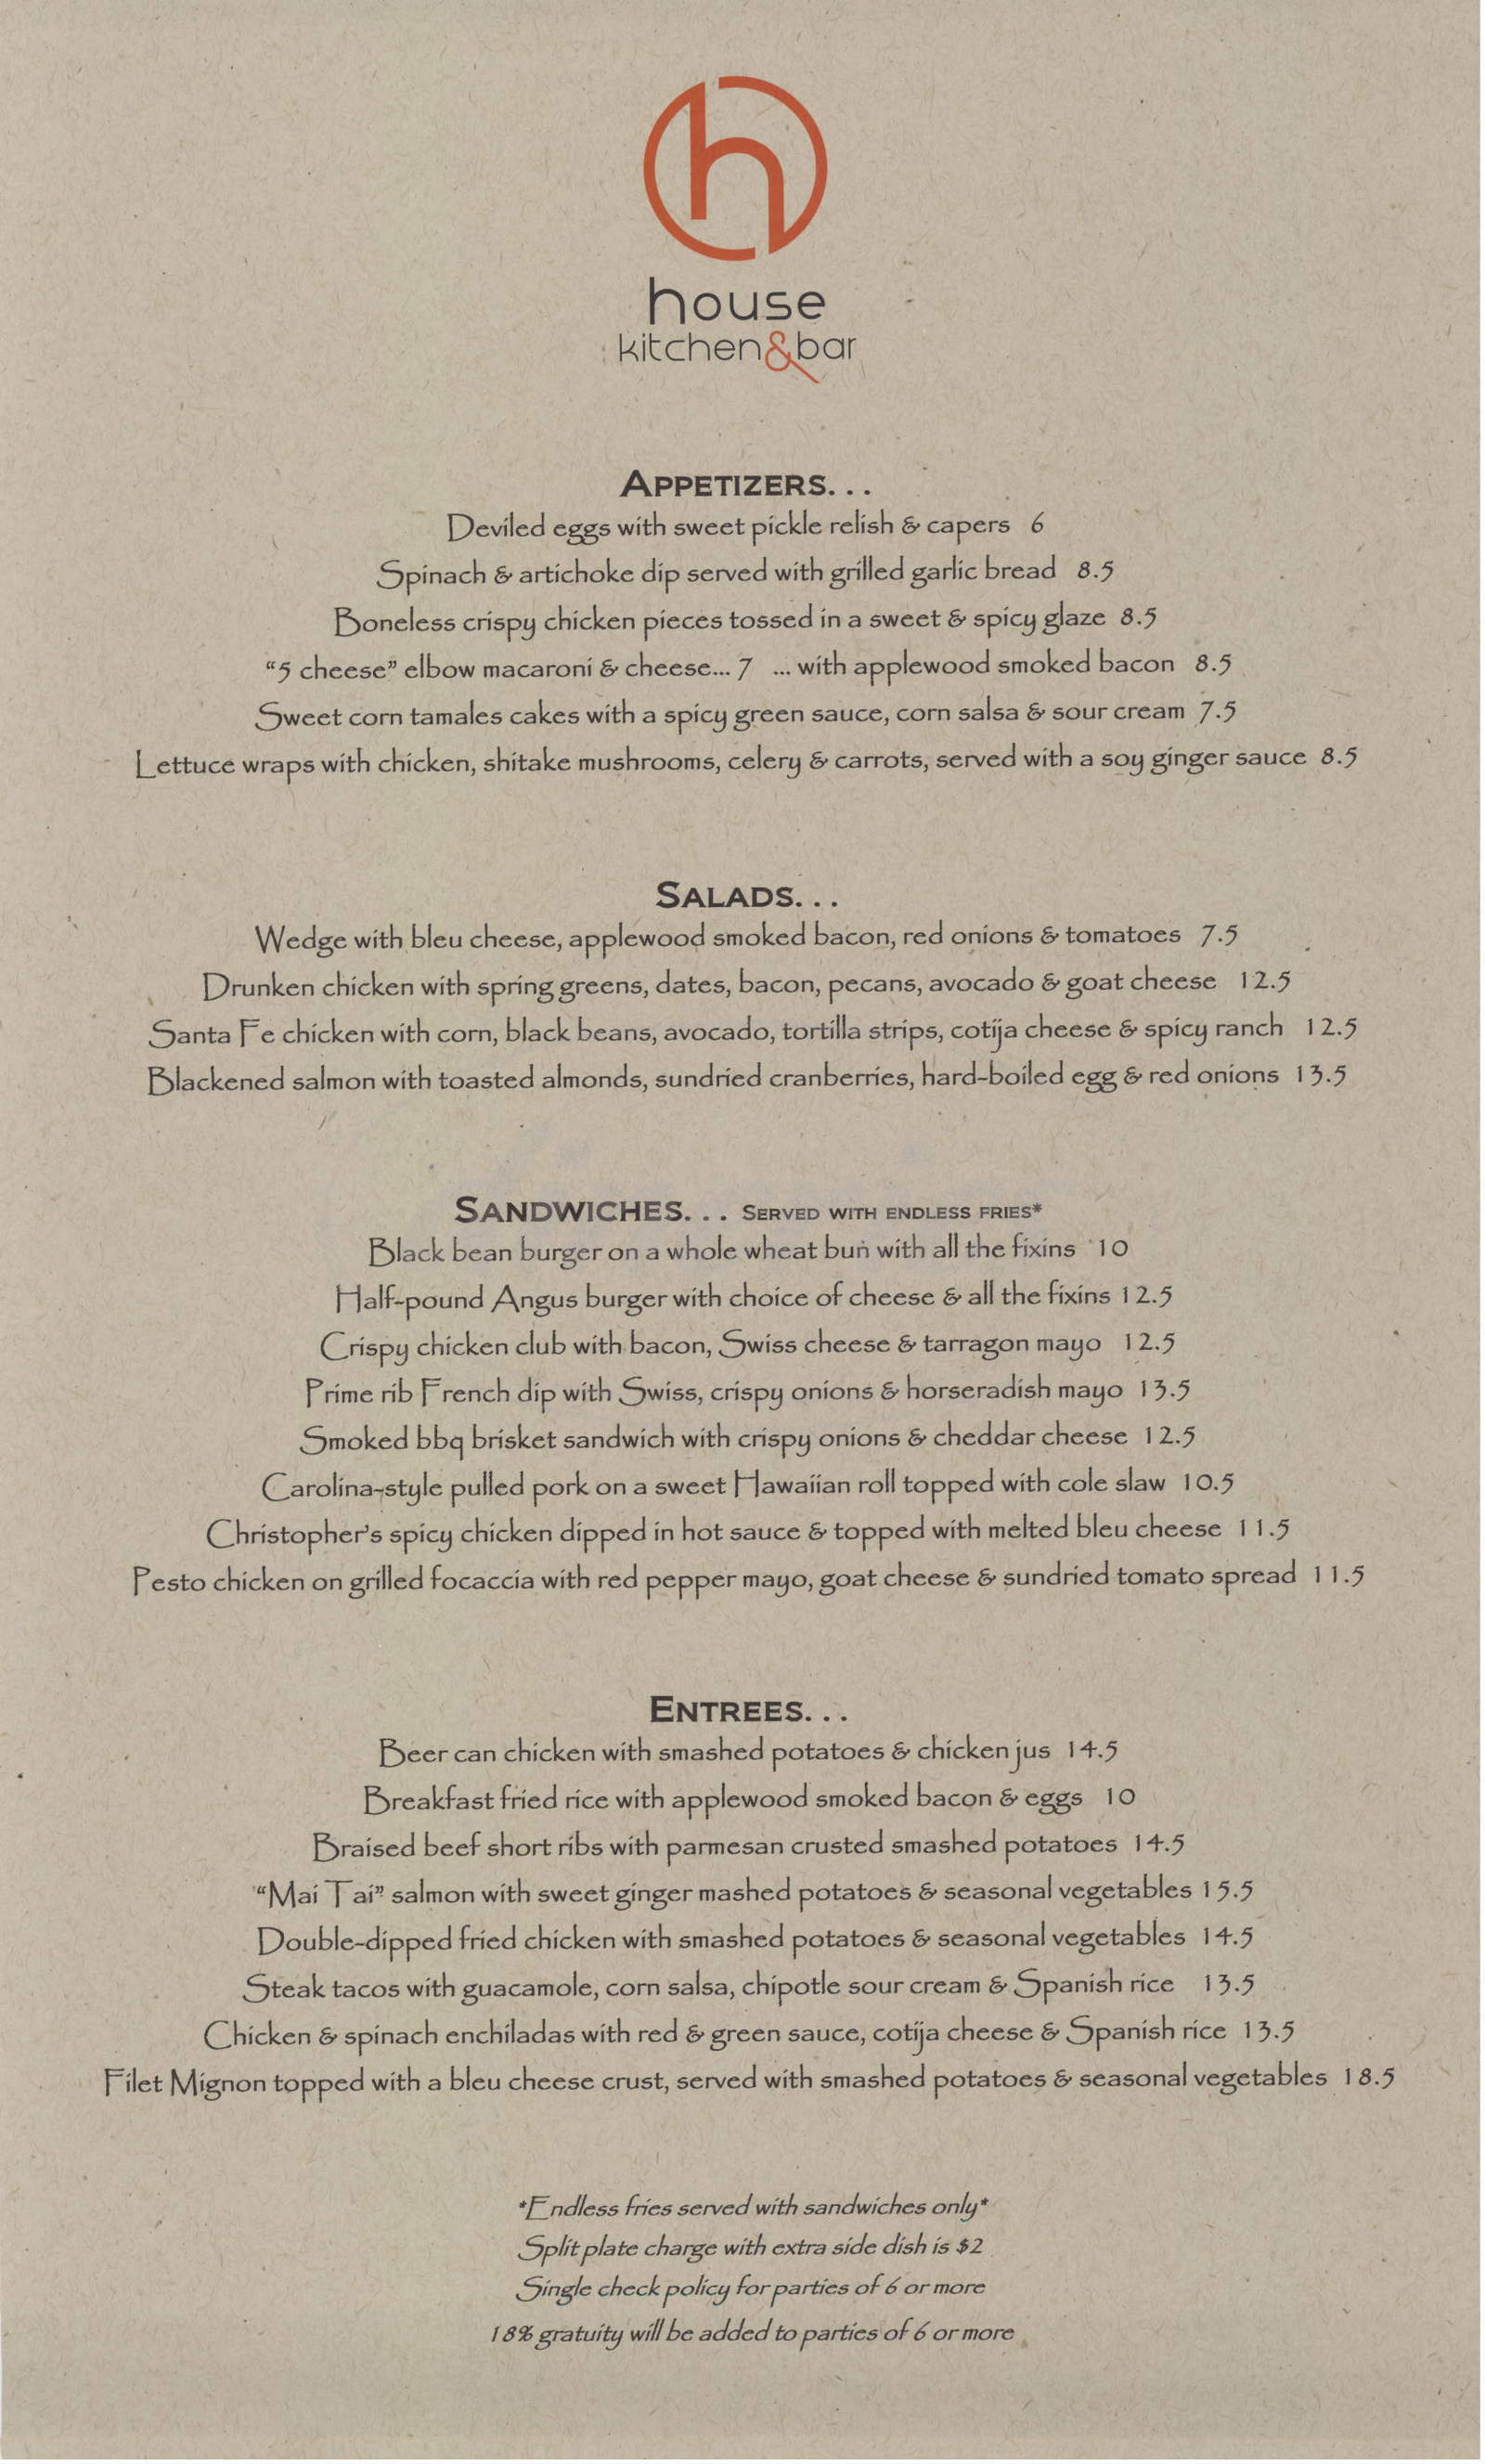 menu for House Kitchen & Bar